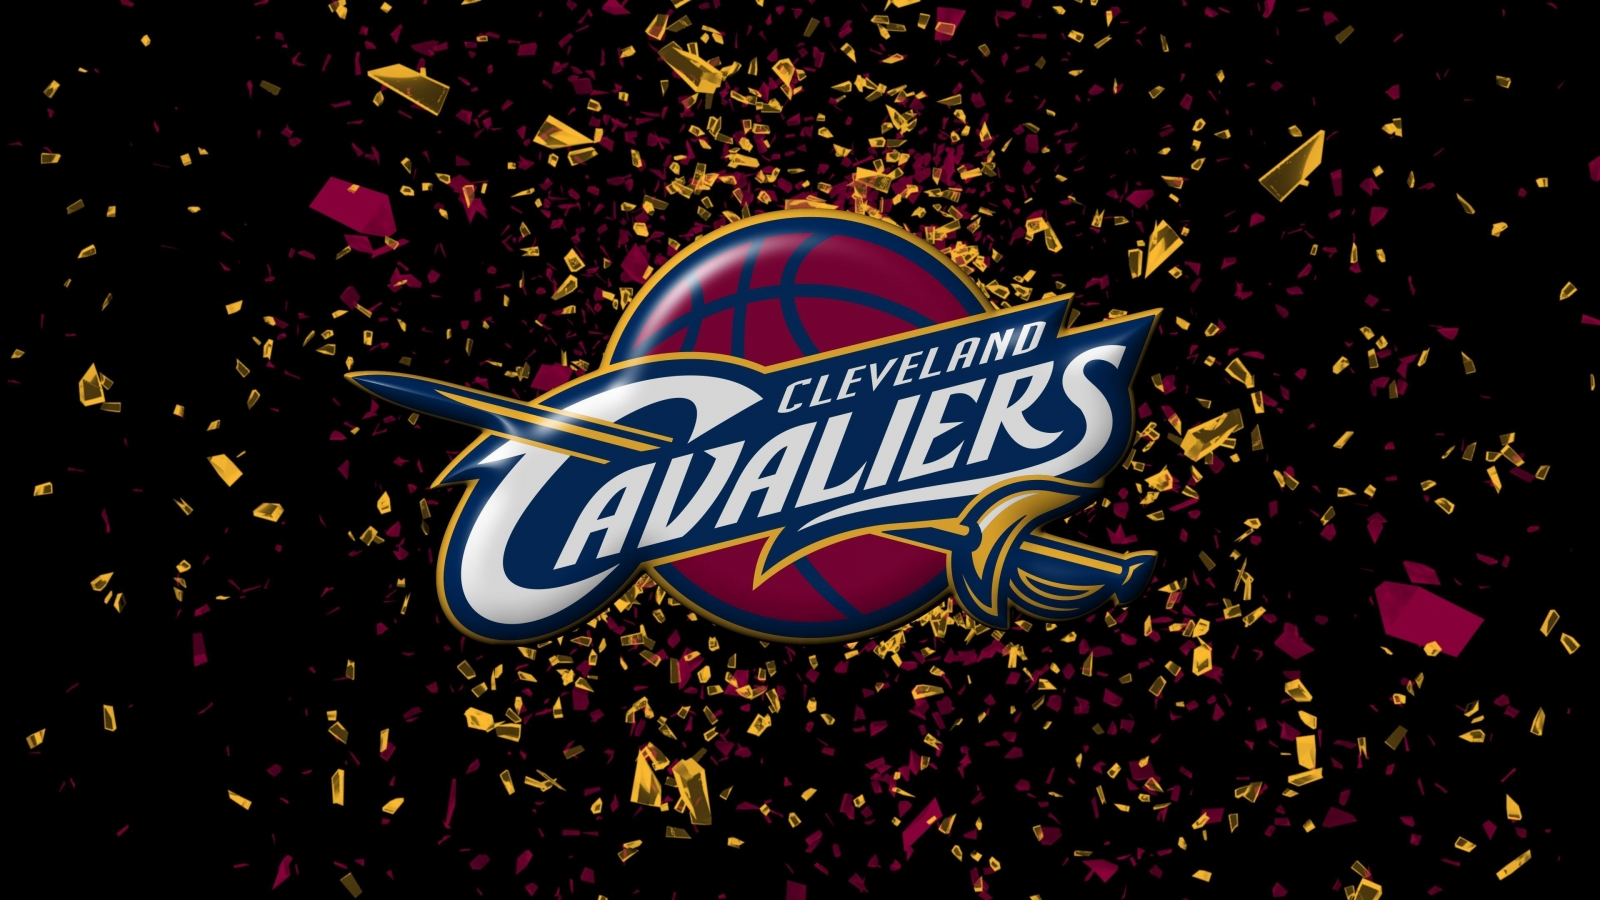 Cleveland Cavaliers for 1600 x 900 HDTV resolution